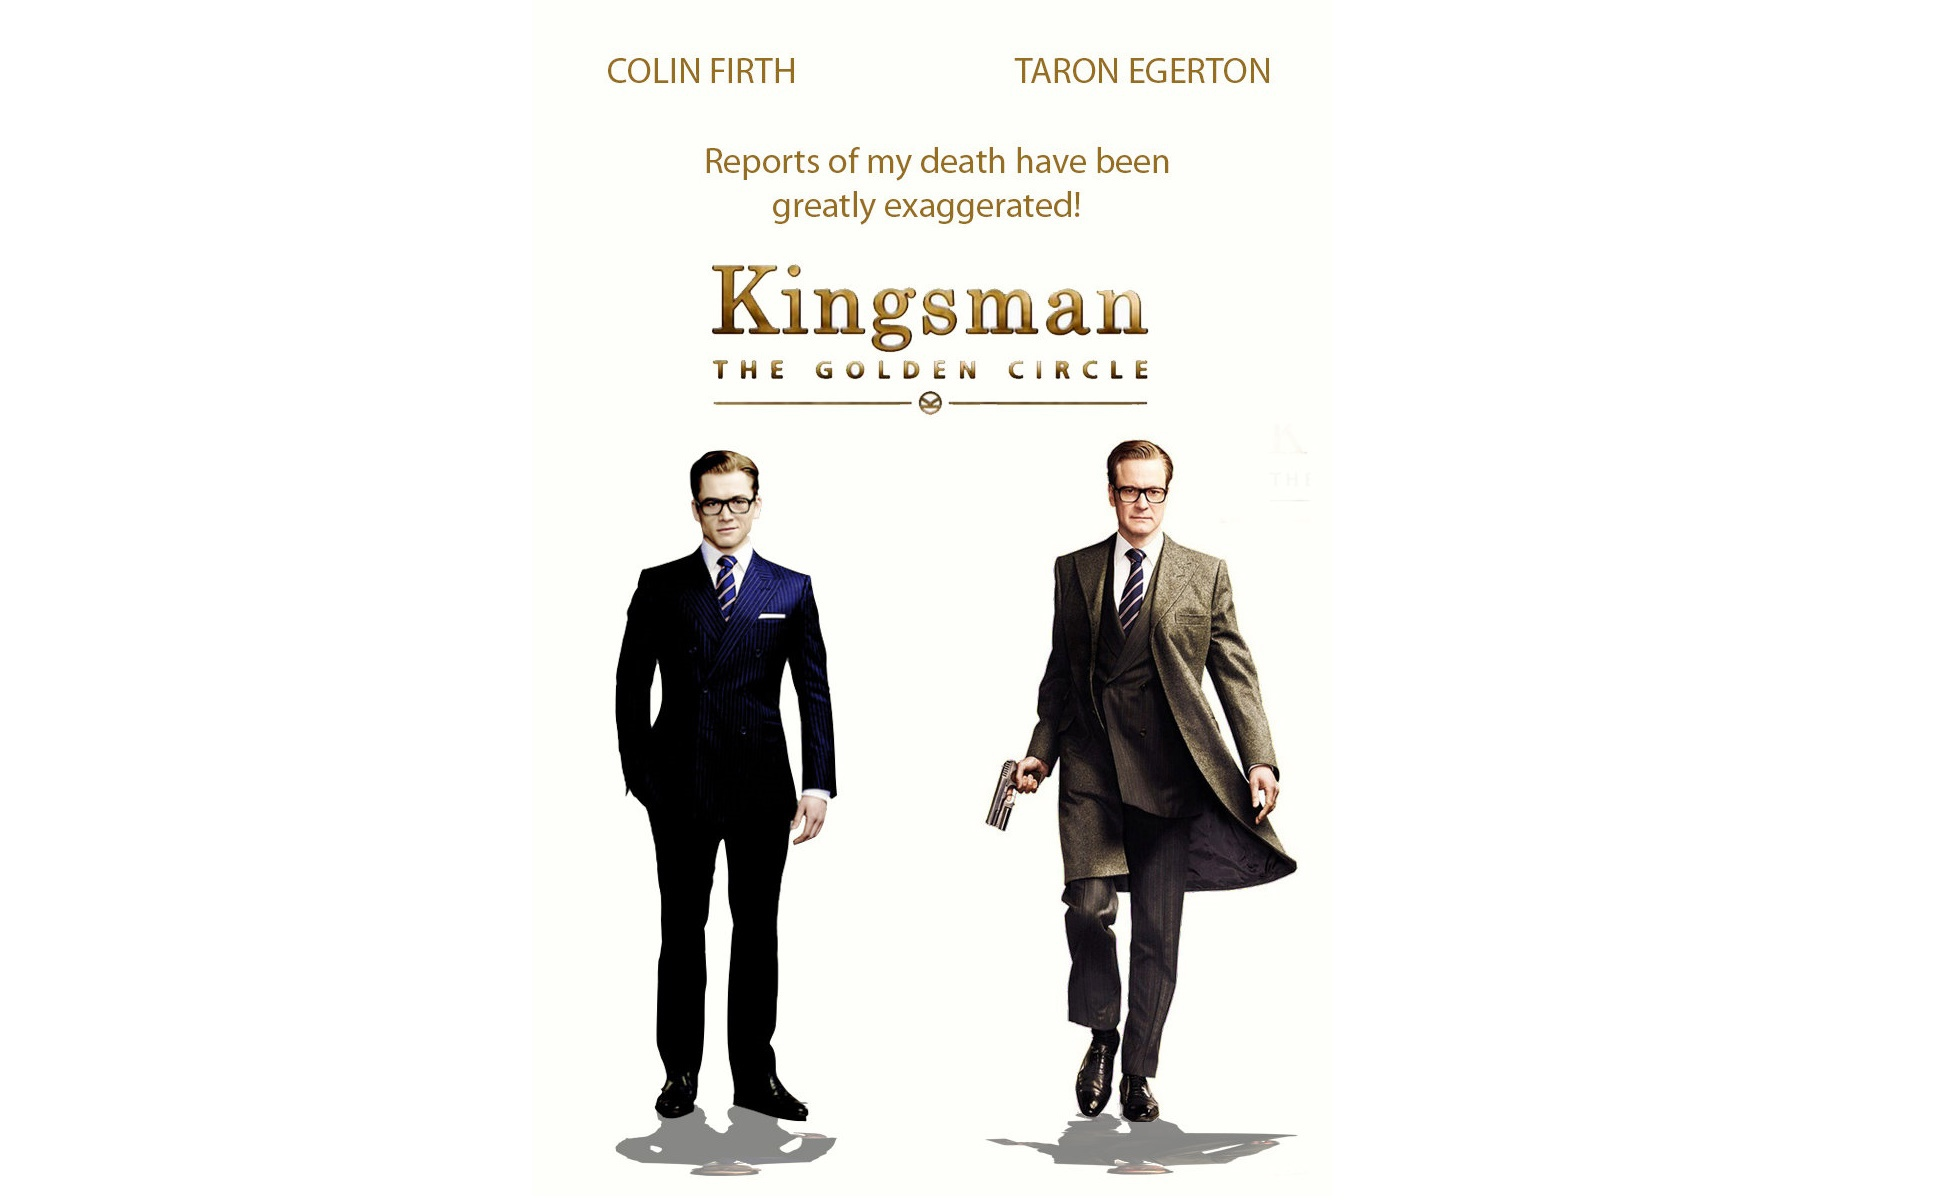 Kingsman The Golden Circle Wallpaper: Kingsman: The Golden Circle Wallpapers Images Photos